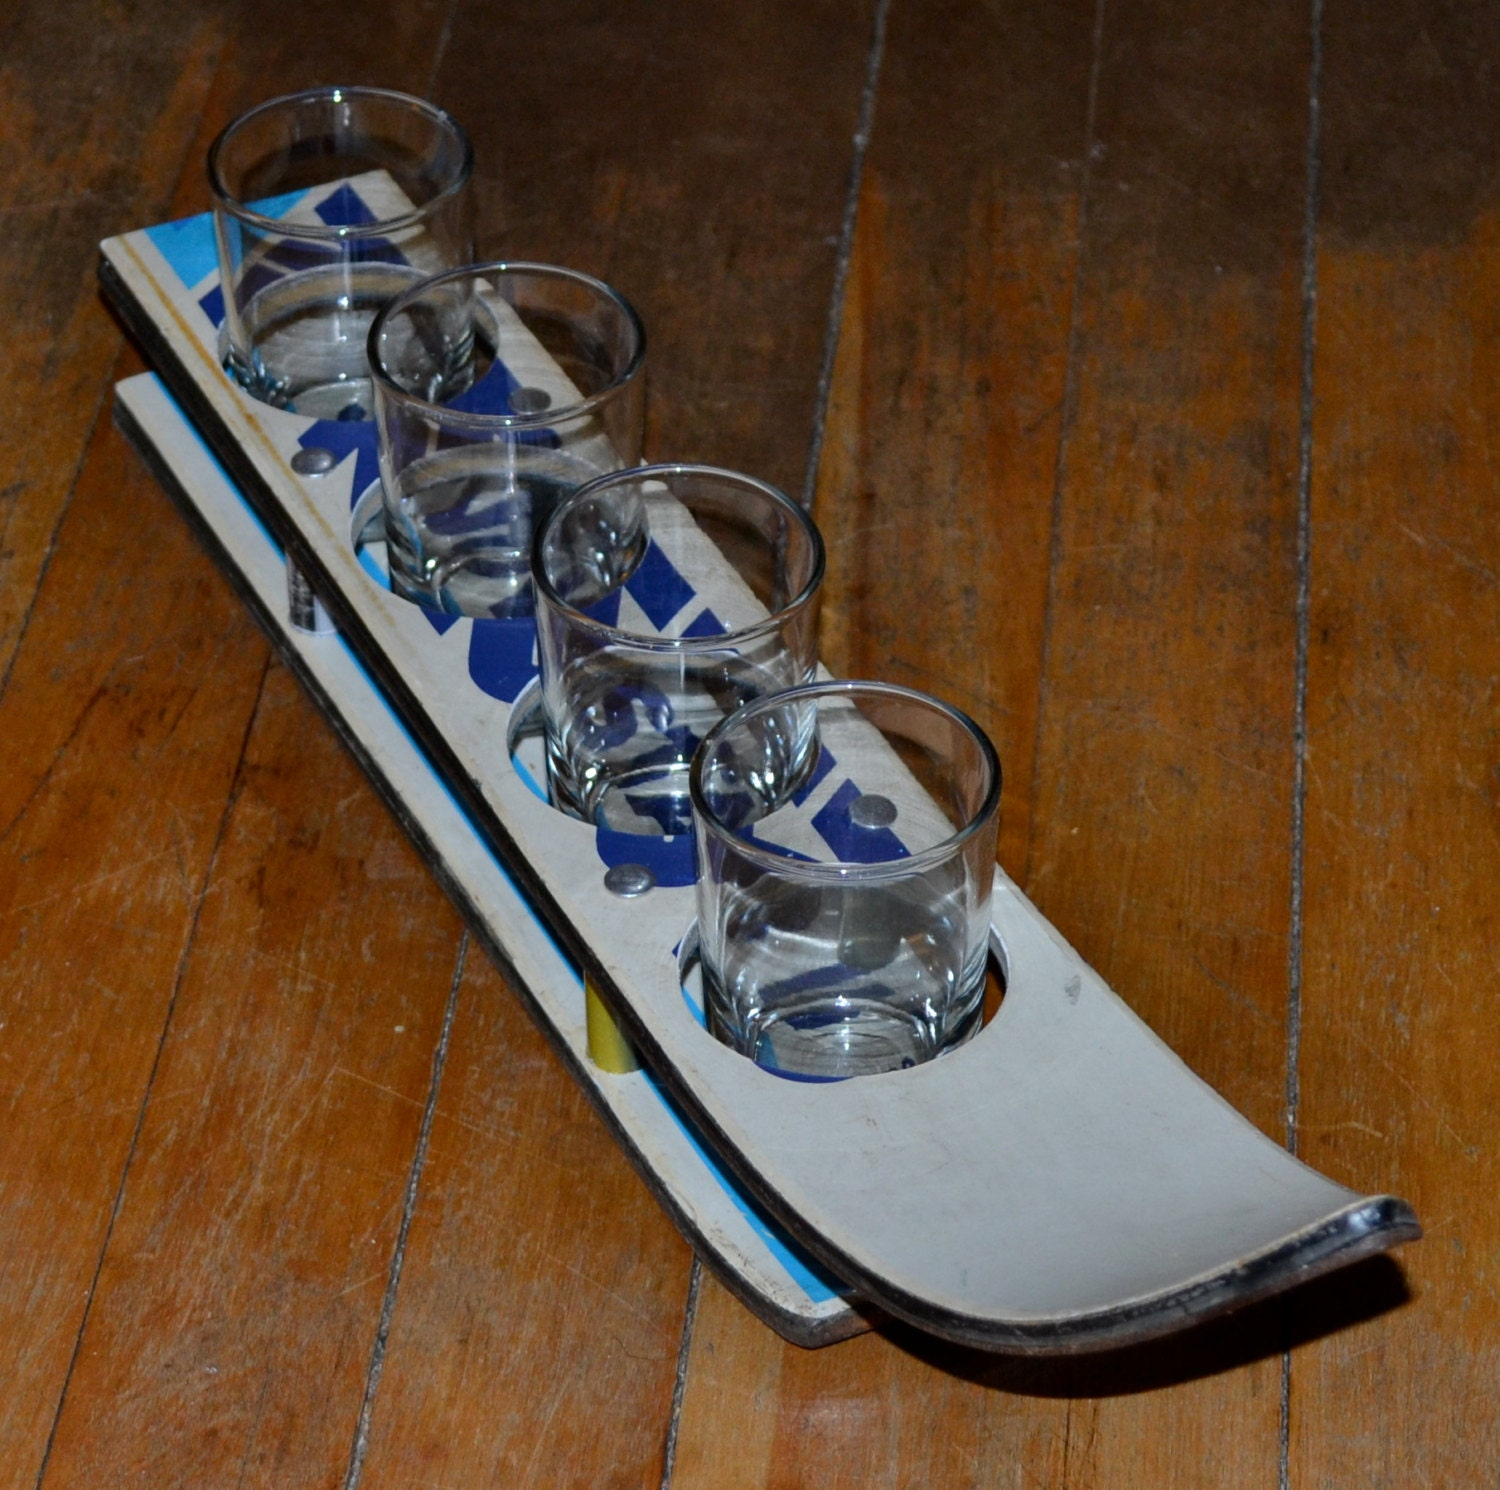 Ski Bench or Coffee Table